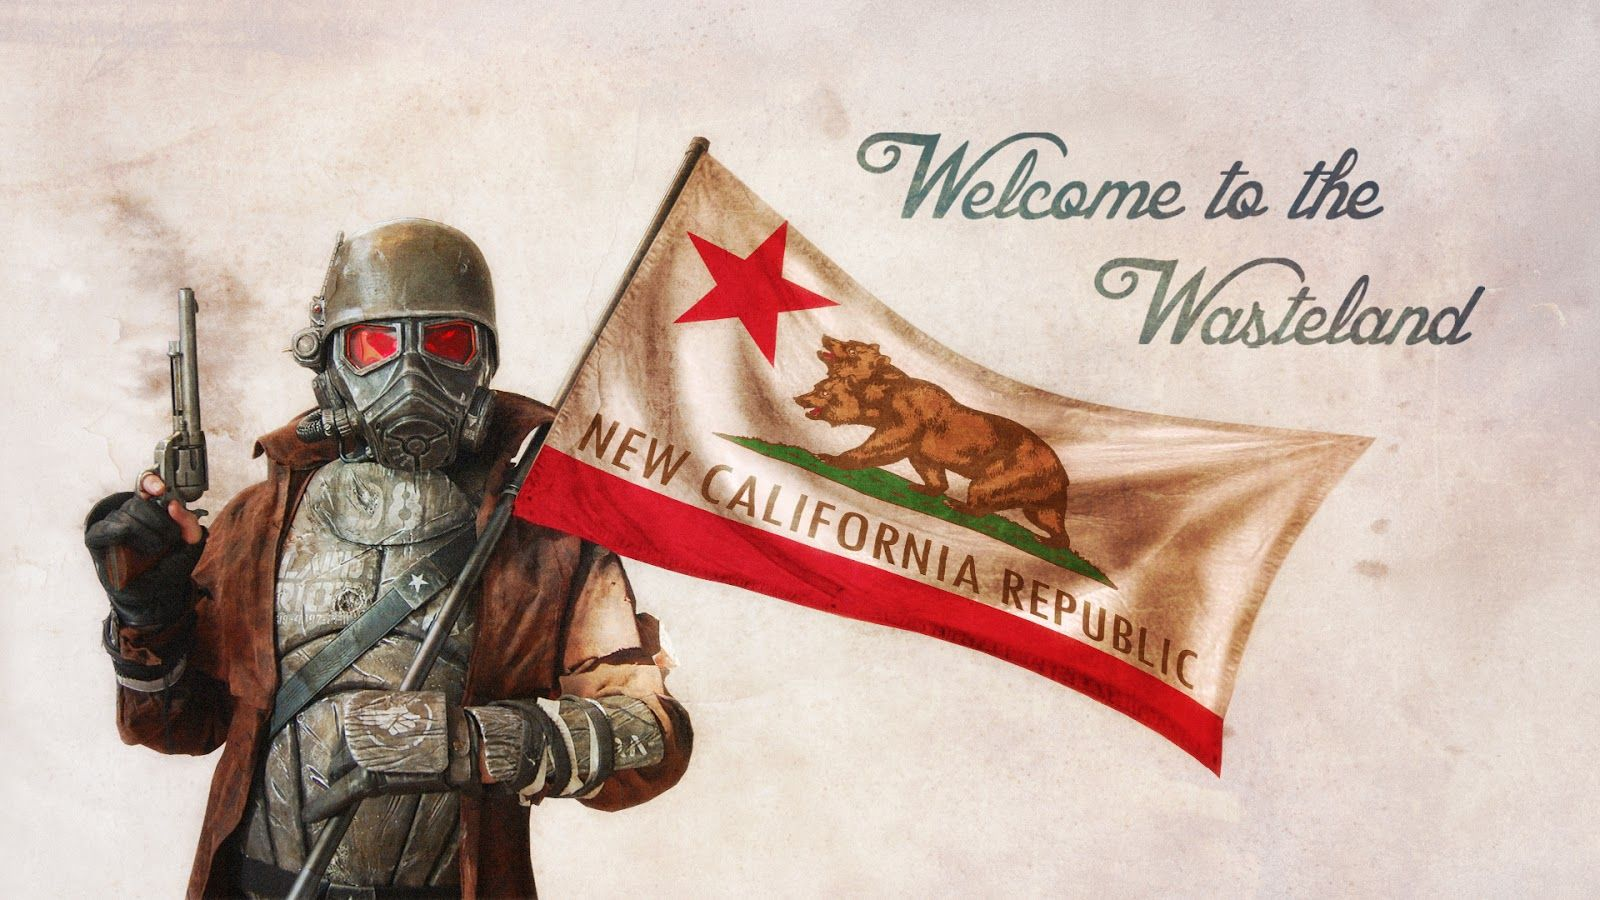 Welcome to the Wasteland New California Republic Flag   Bear